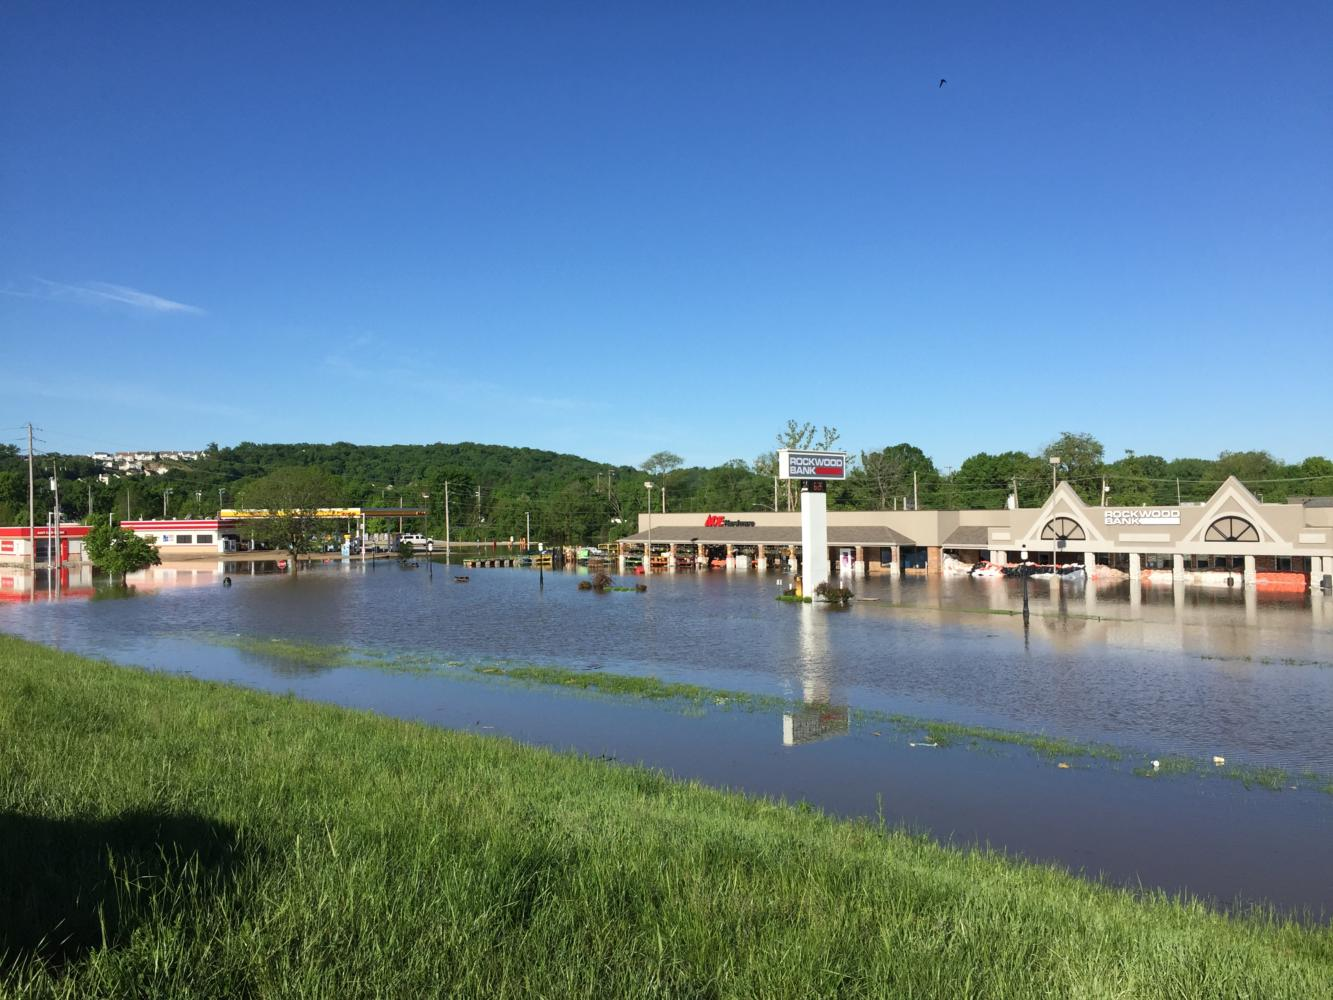 Rains cause record flooding in Eureka. The Meramec River crested at roughly 46 feet, causing RSD to cancel school for four days.